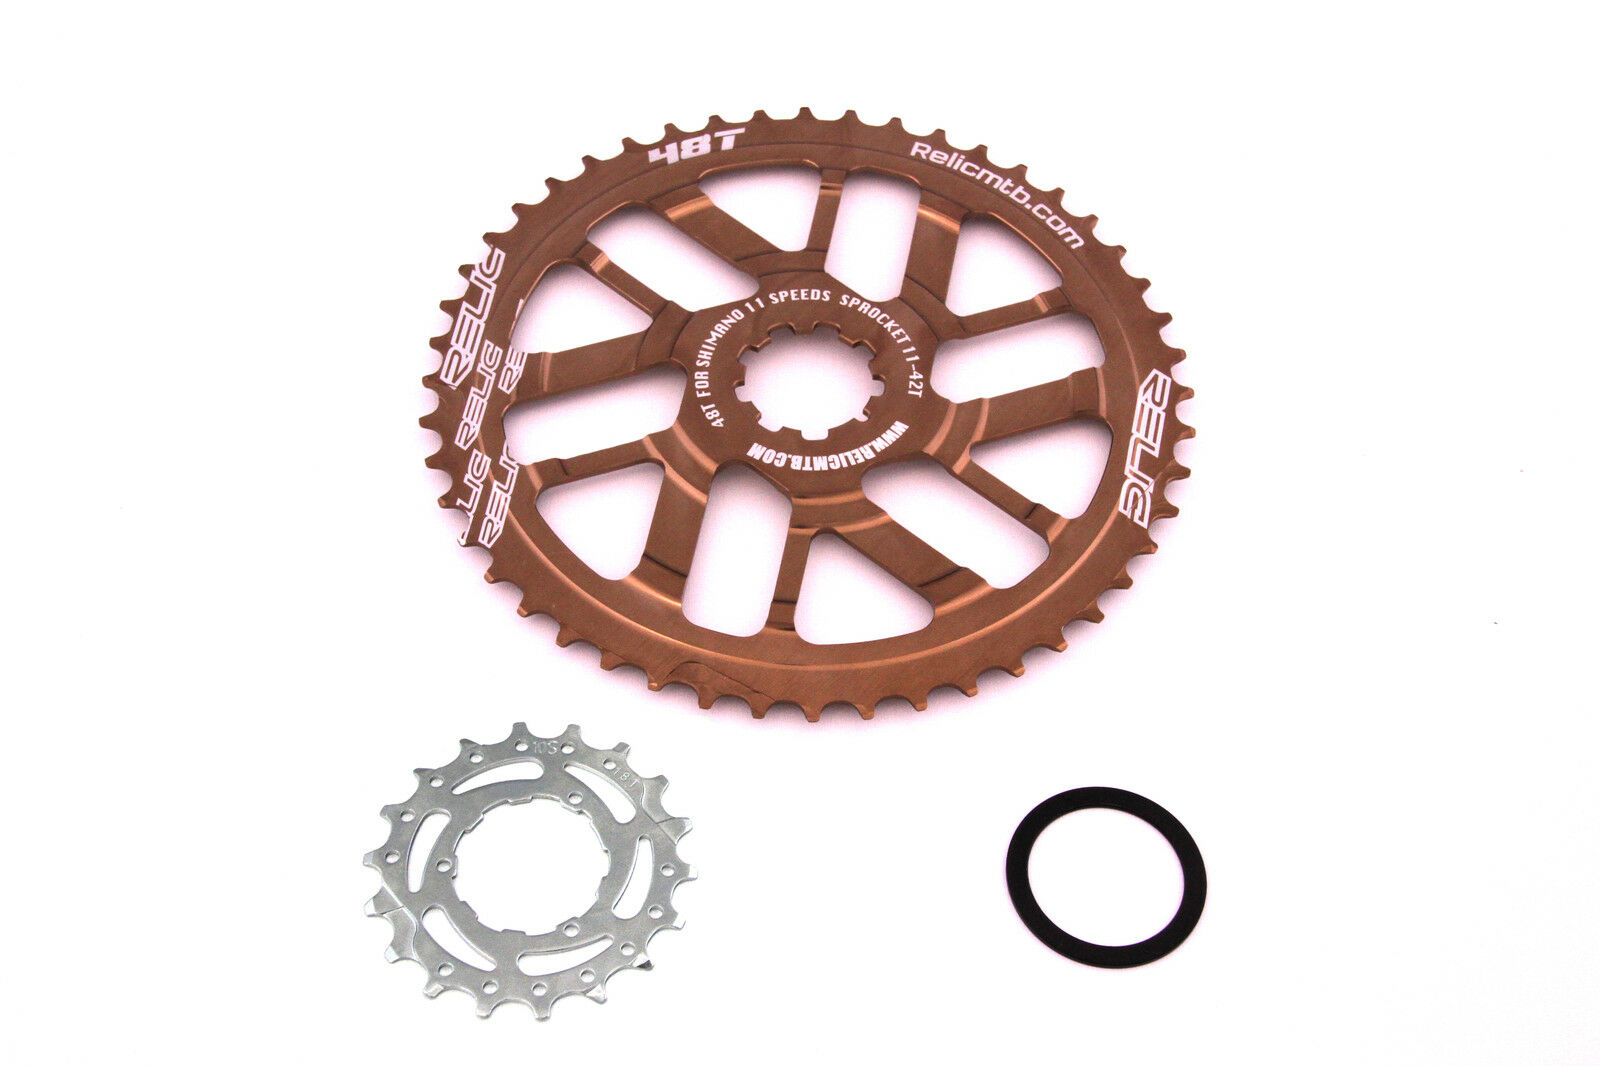 Relic 48T Final Gear Upgrade Kit for Shimano 11 Speed - 11 42T Cassette - Bronze